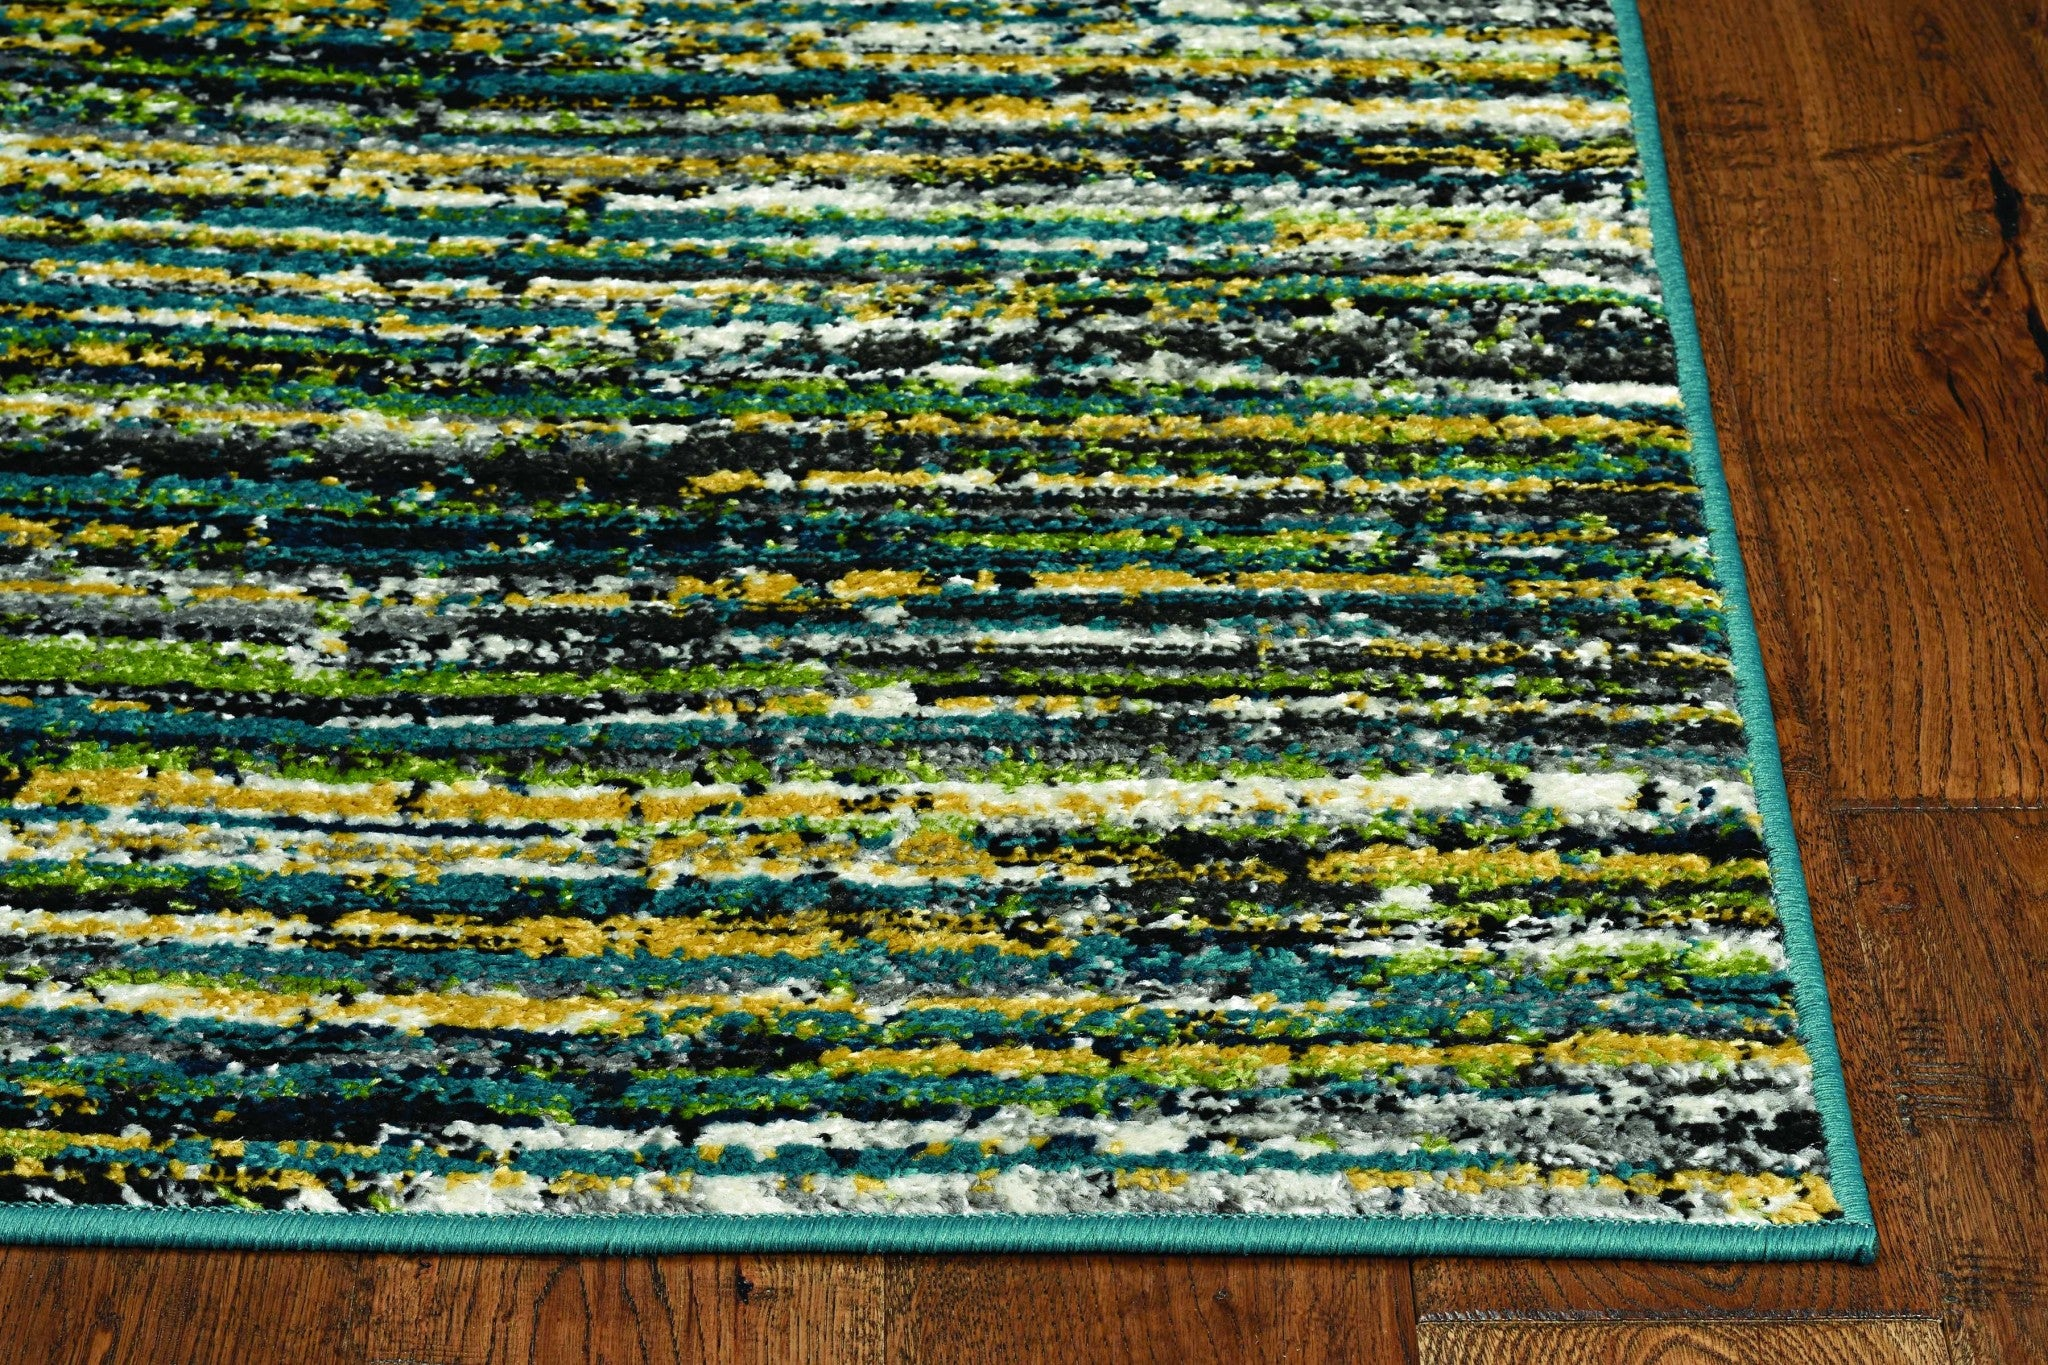 7' Grey Teal Machine Woven Solid Striation Indoor Runner Rug